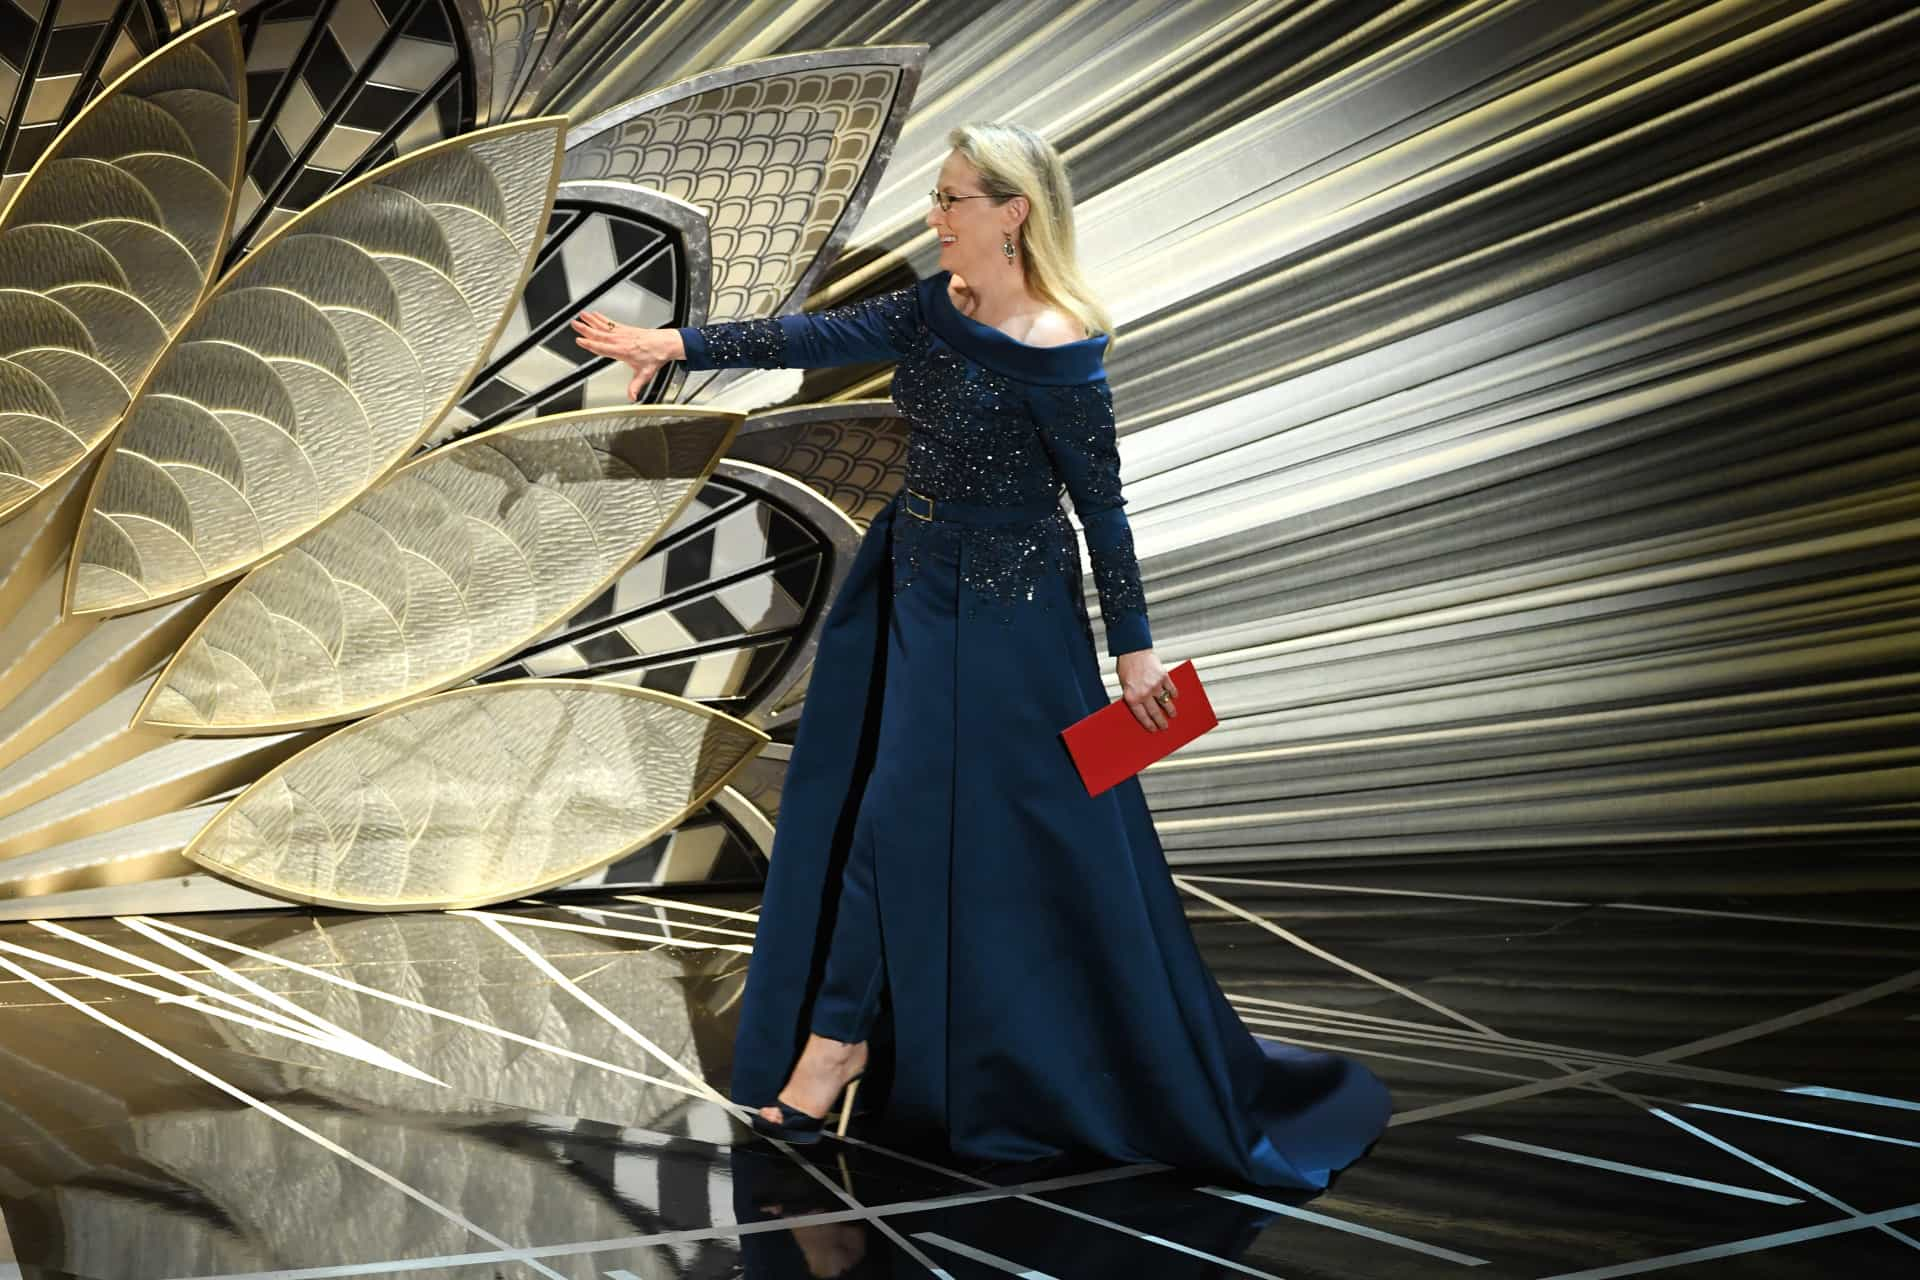 What the nominees for Best Actress could wear for the Oscars 2018